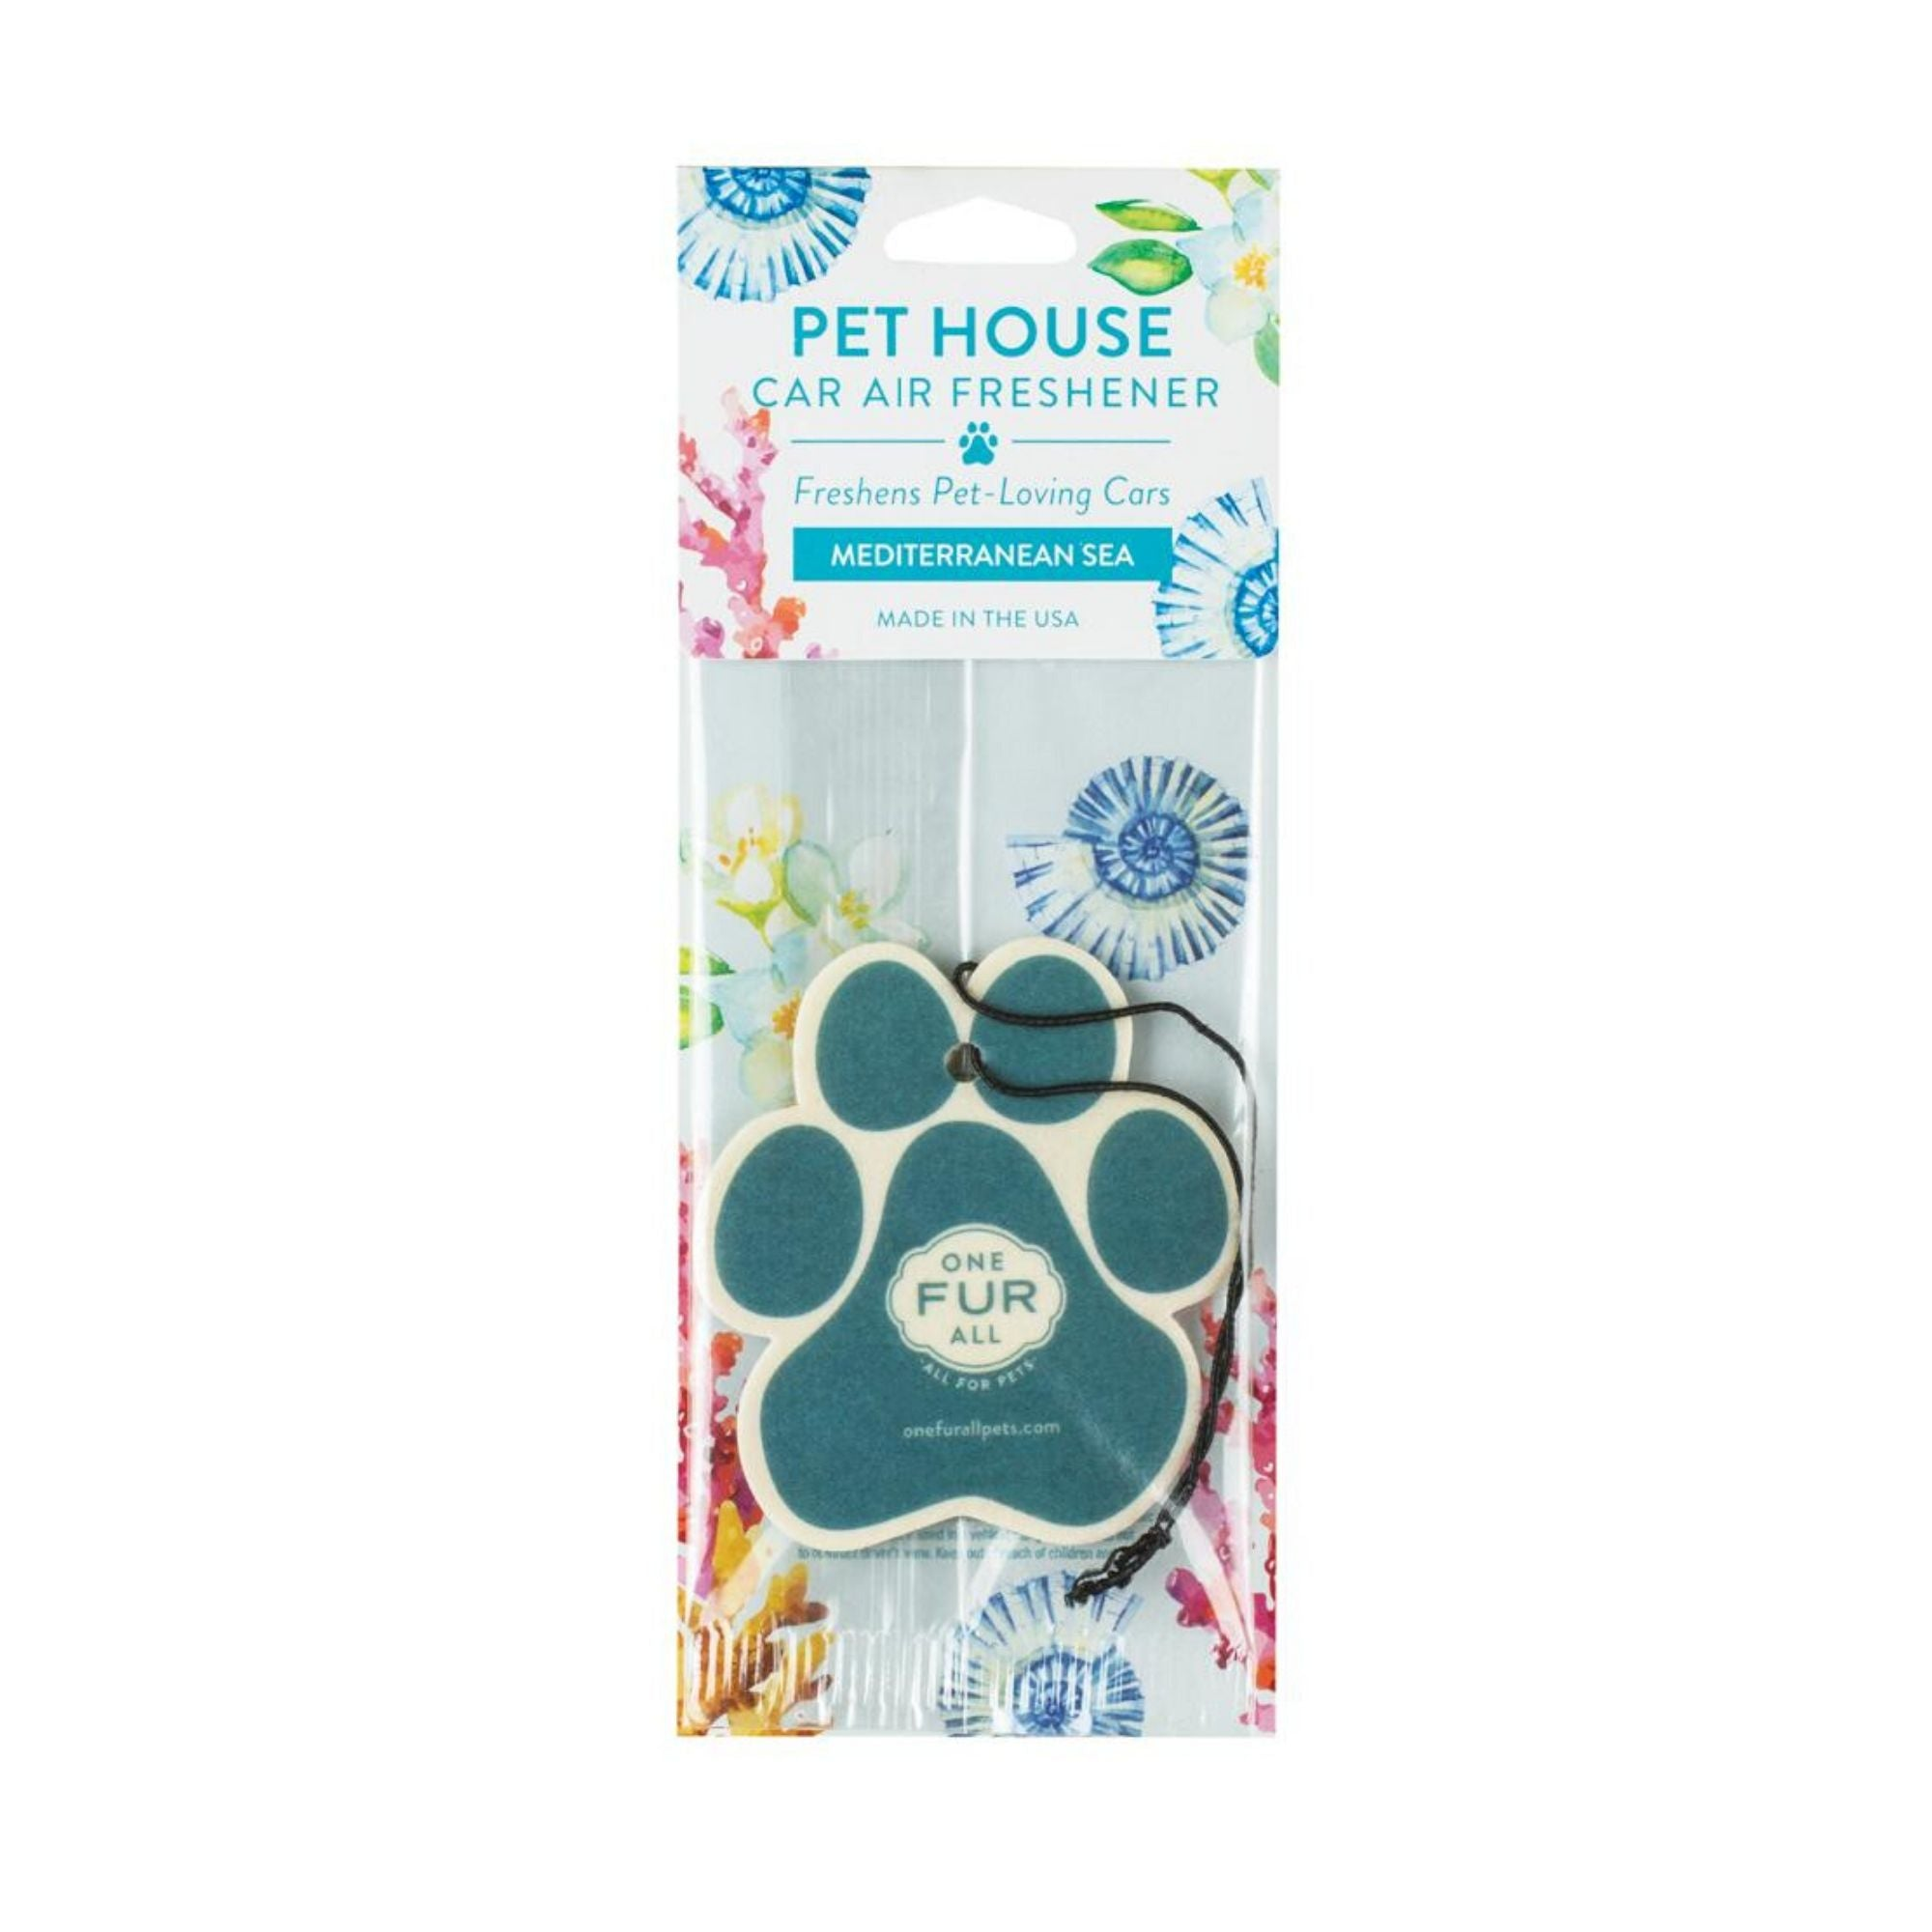 One Fur All Car Air Freshener Bamboo Watermint, Pet Friendly | Barks & Bunnies